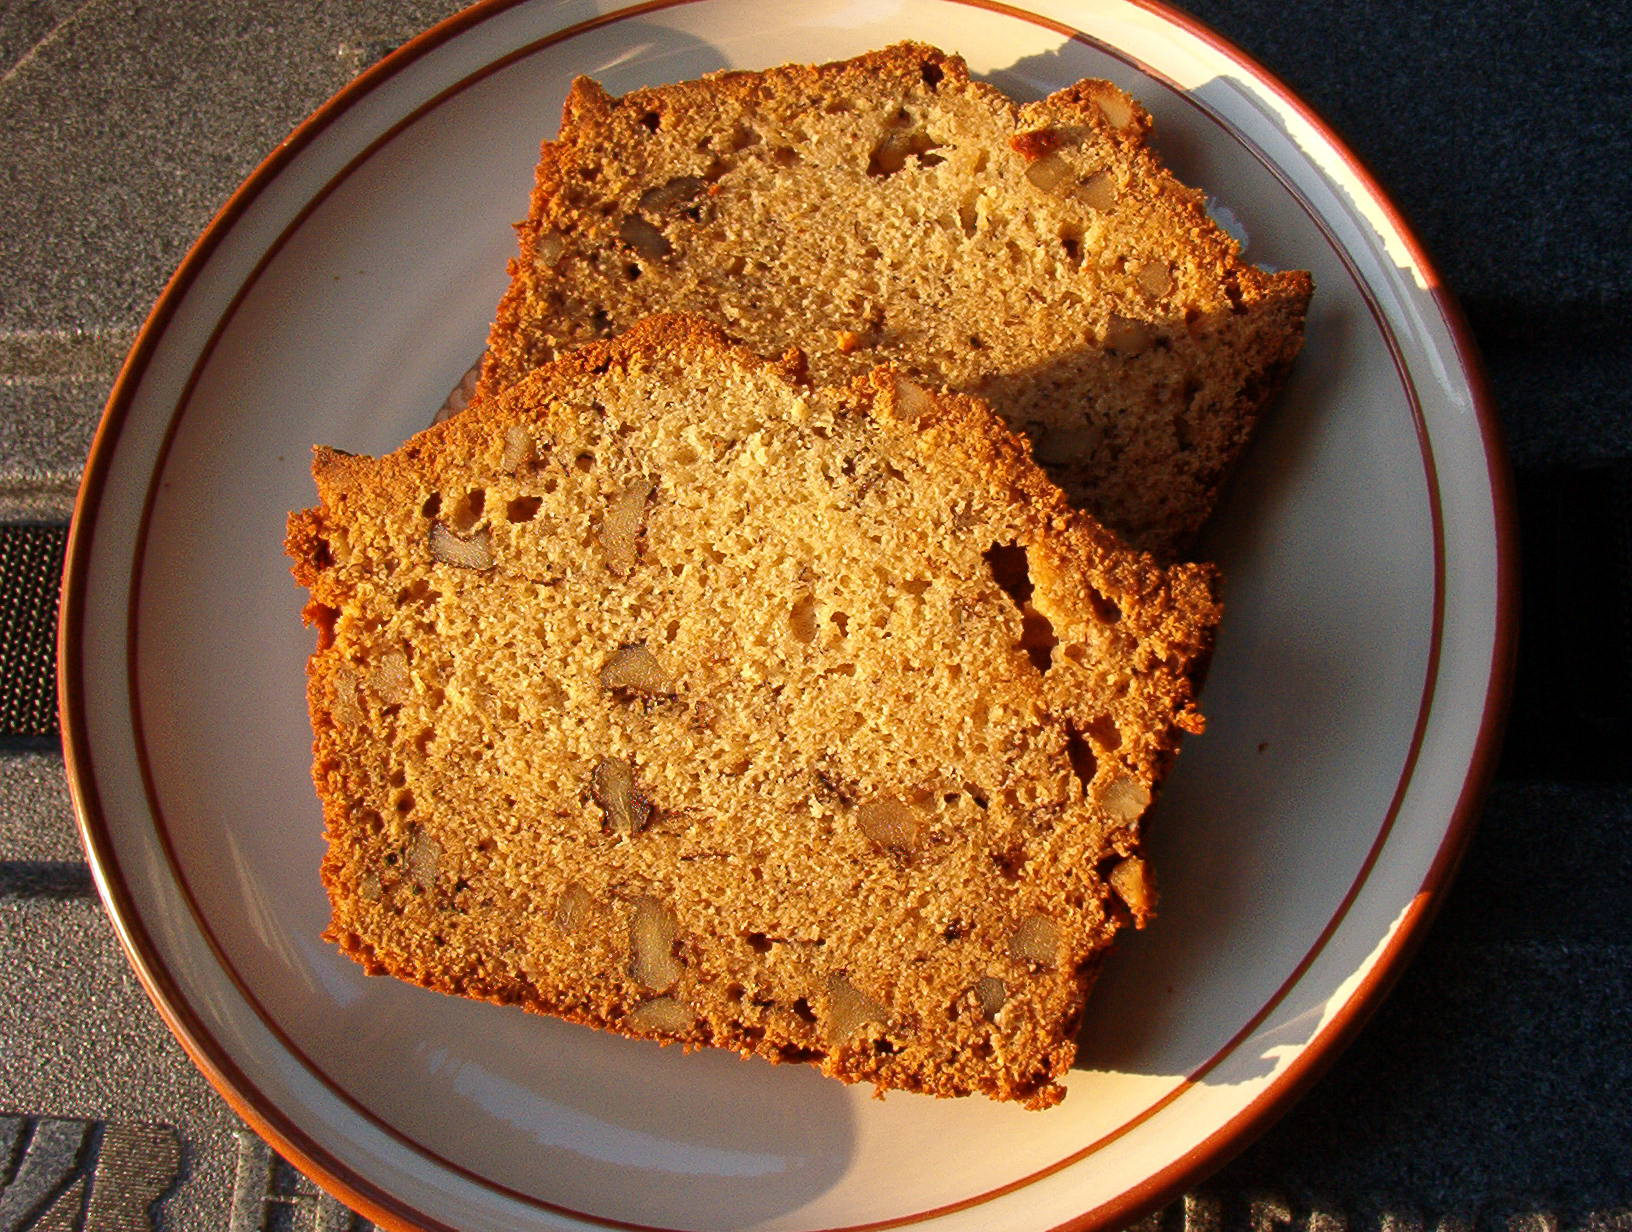 File:Aunt Edith's Banana Bread Recipe.jpg - Wikimedia Commons